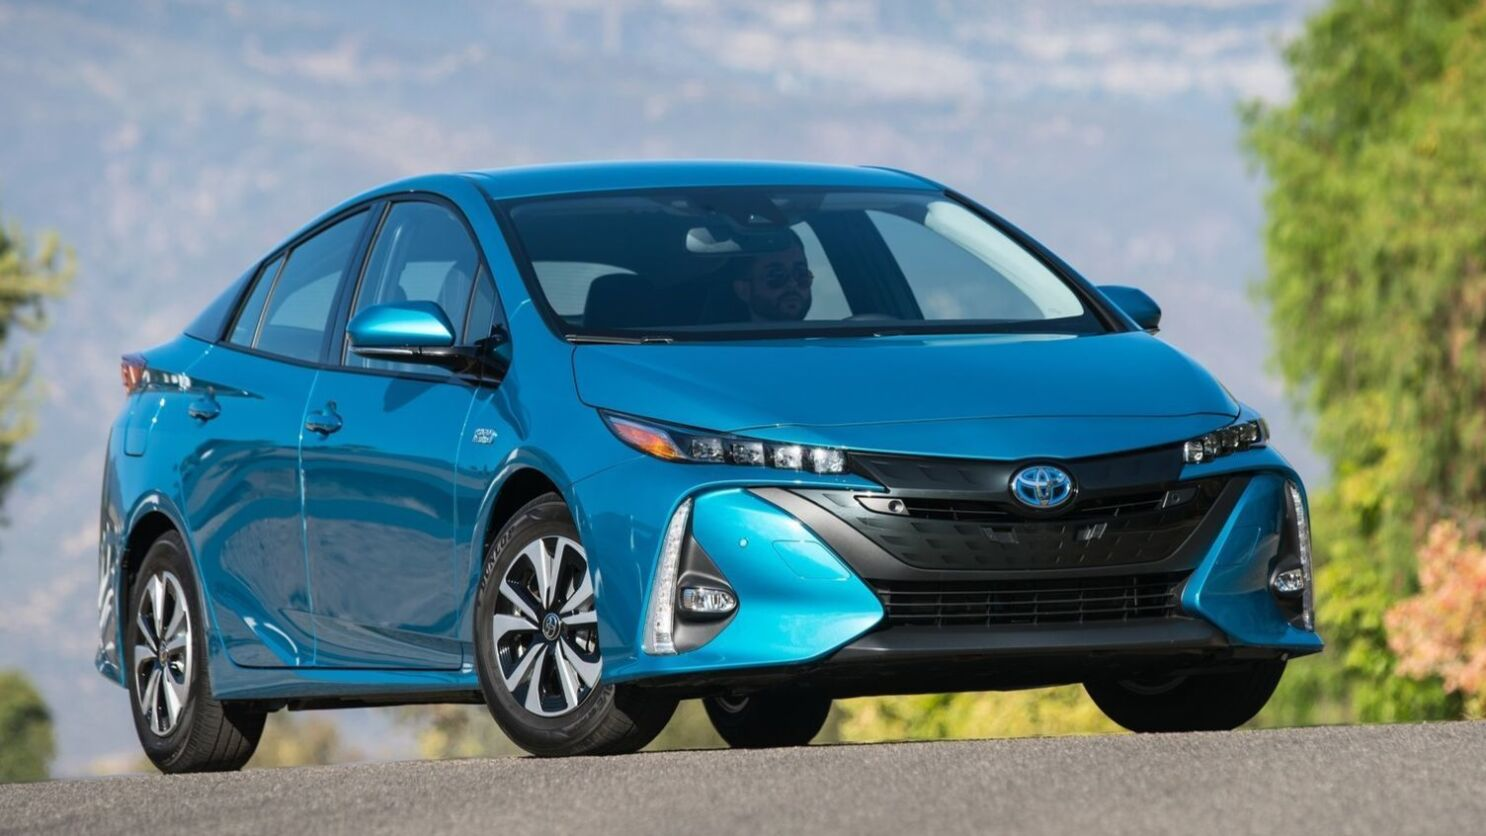 2018 Toyota Prius Prime Nothing Fancy Just 640 Miles On A Tank